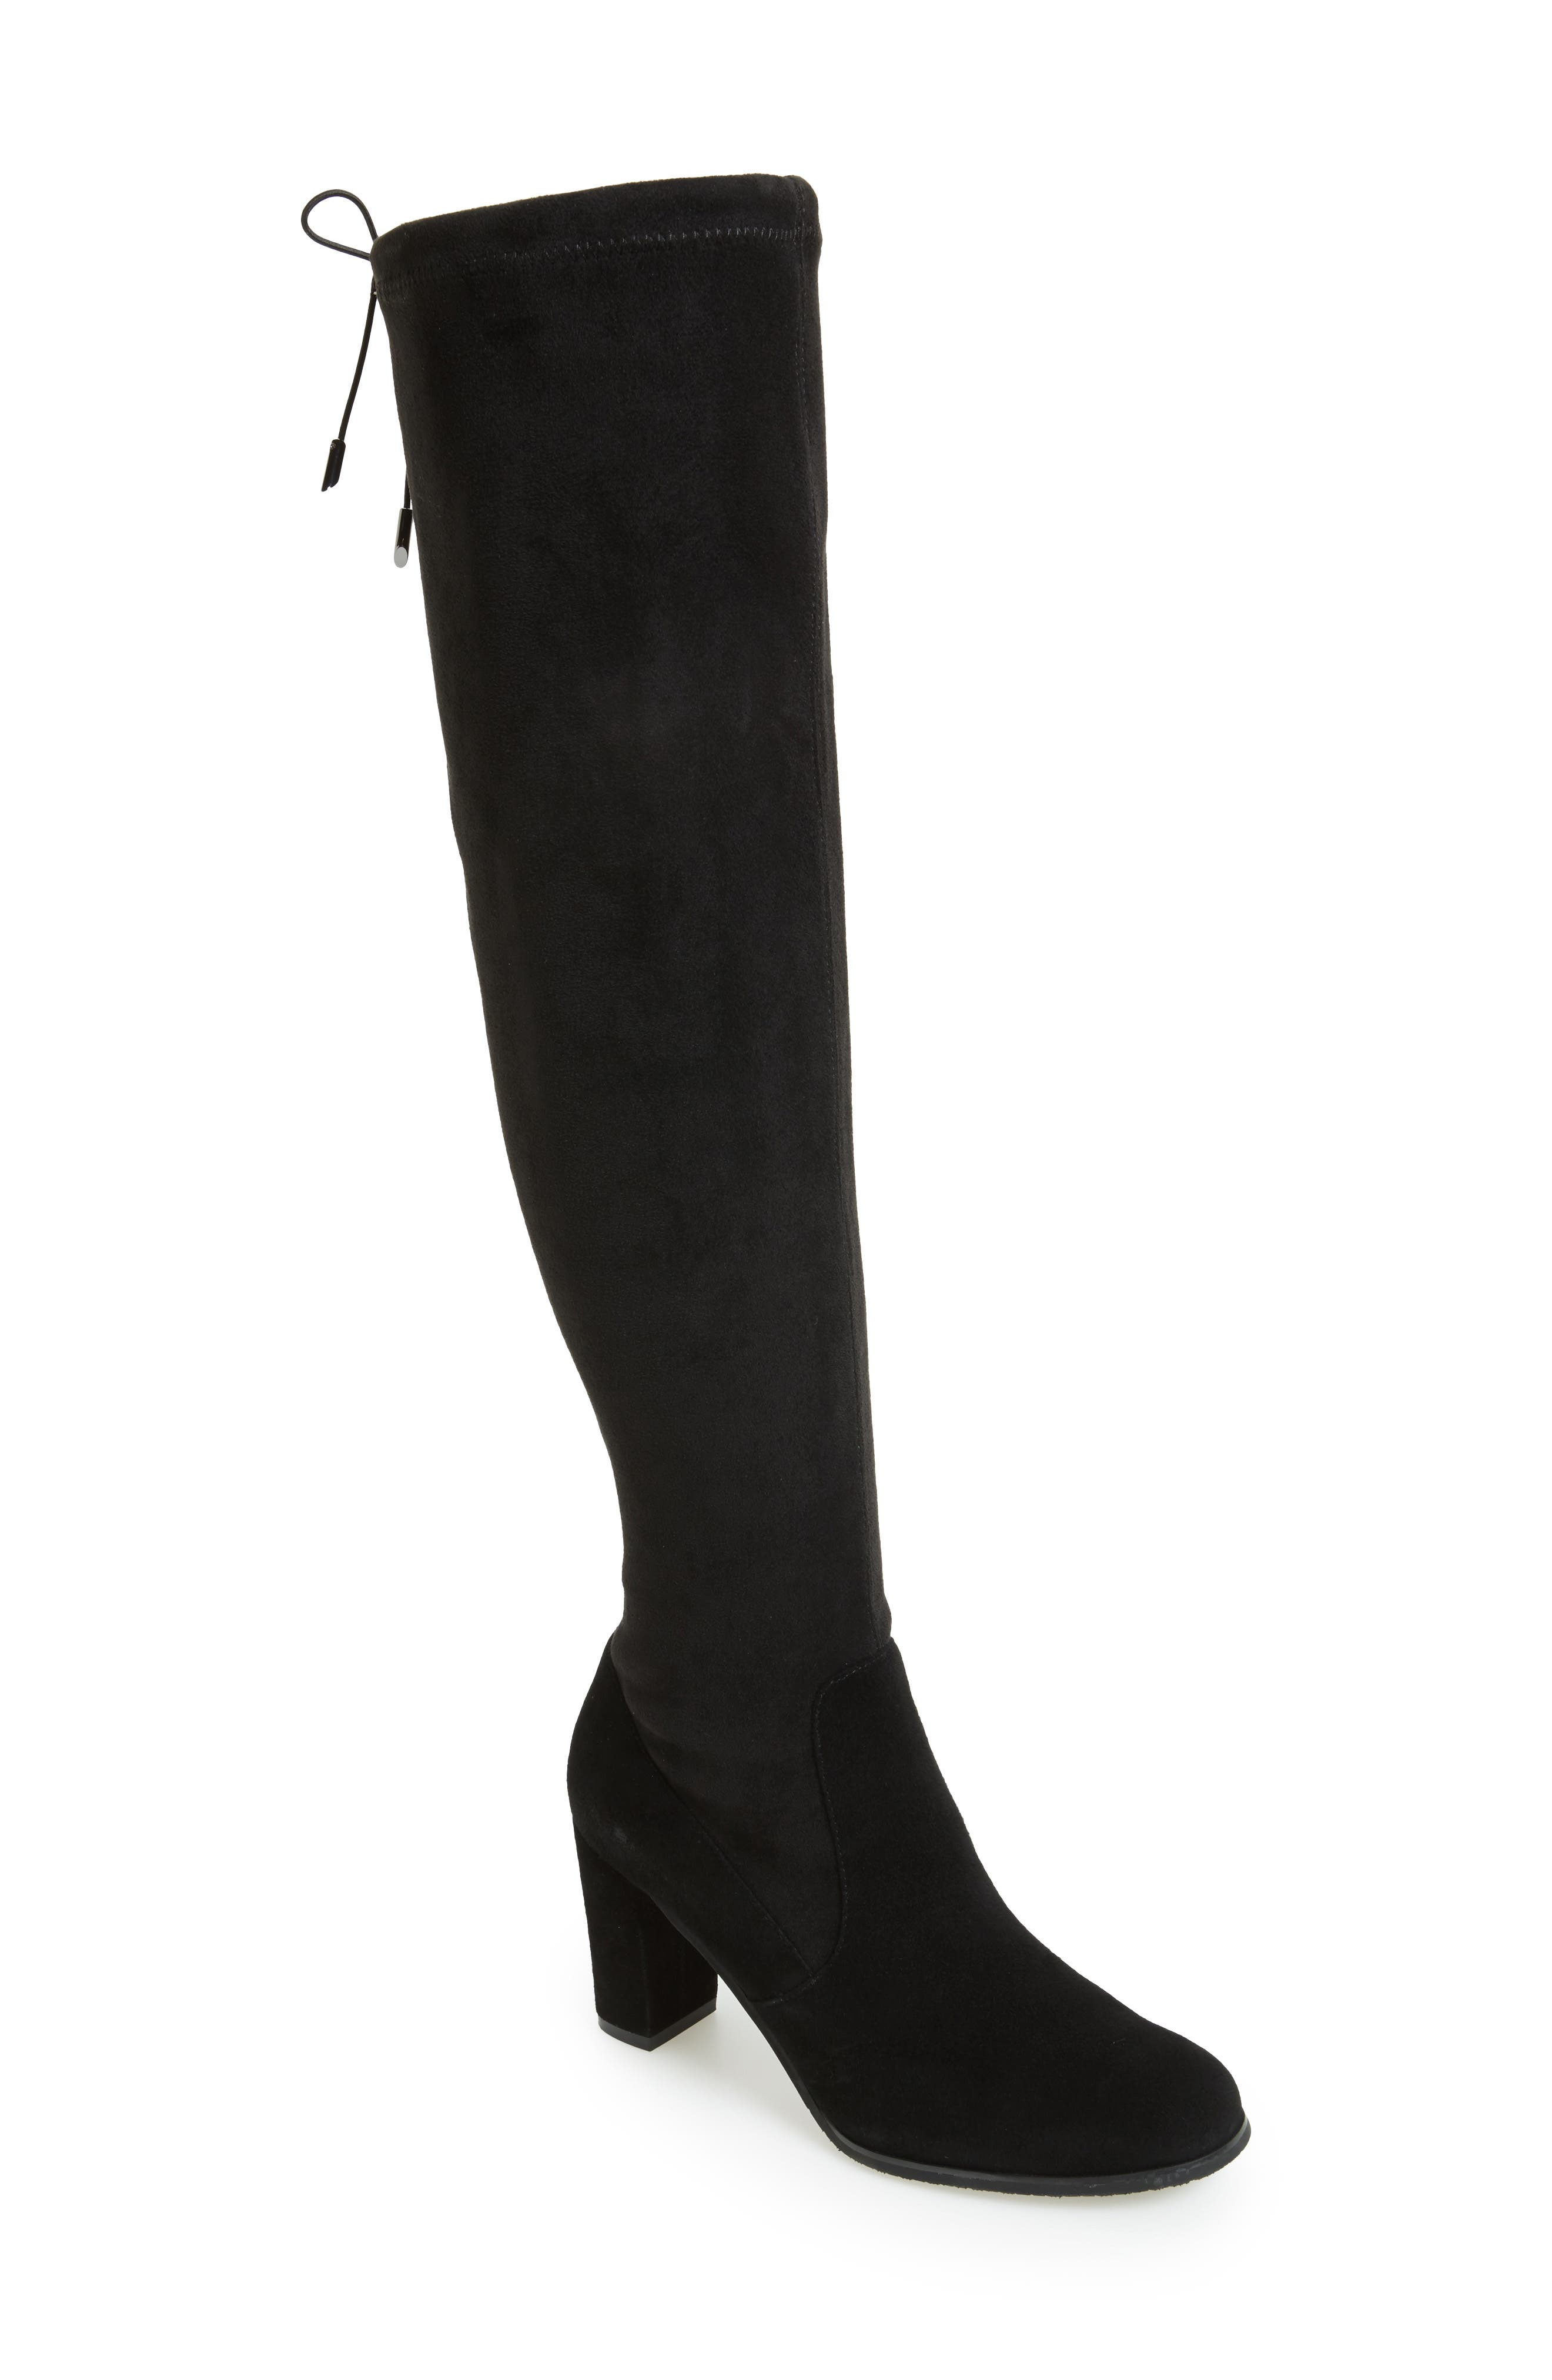 Kali Waterproof Over the Knee Boot,                         Main,                         color, BLACK SUEDE